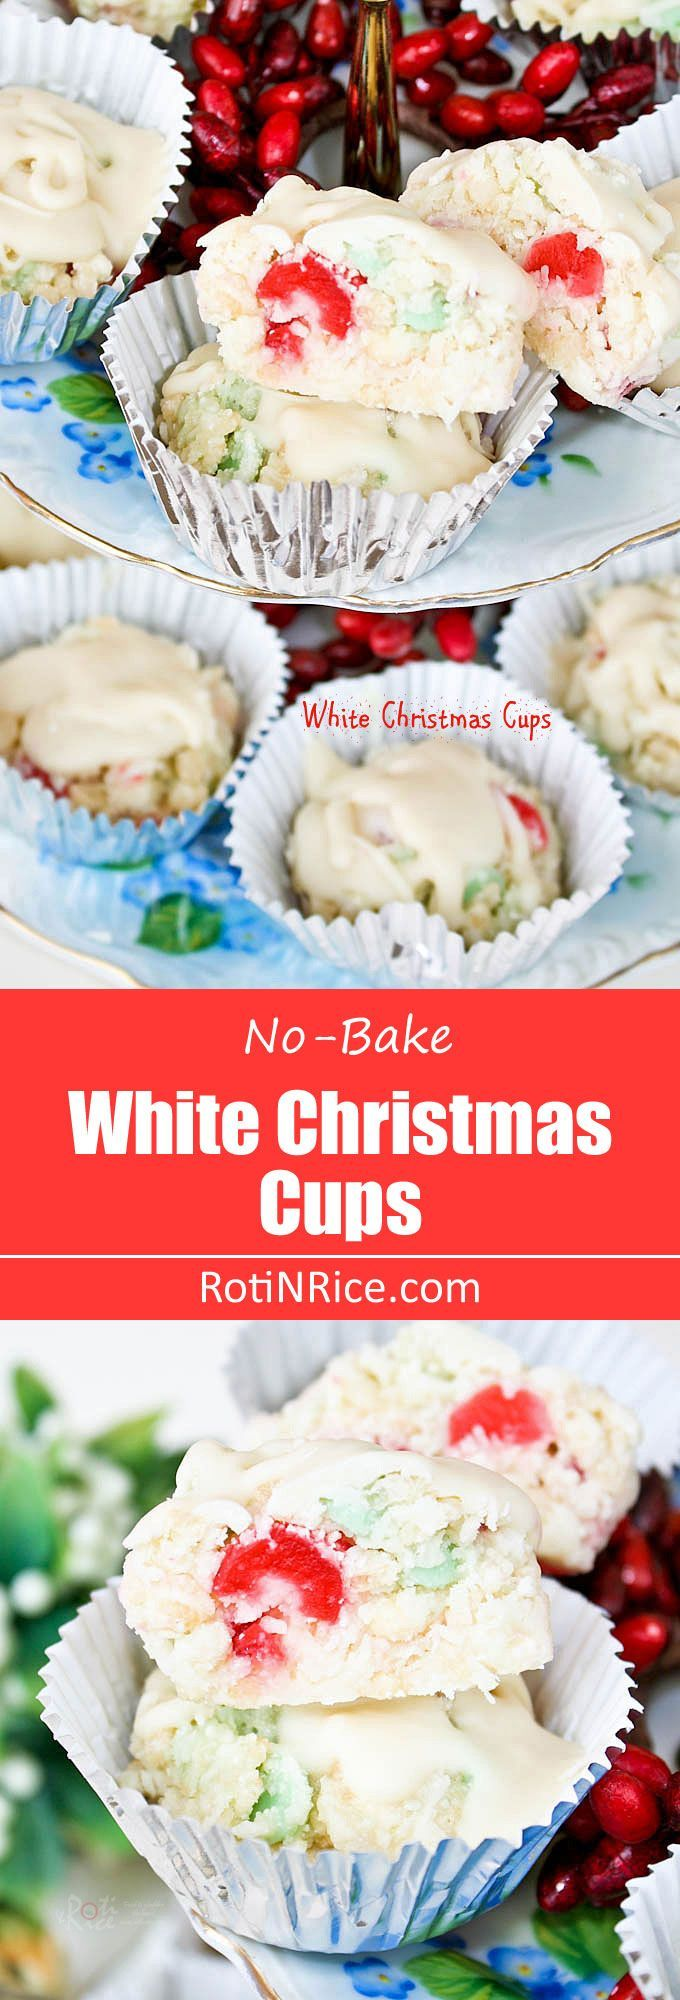 Rice krispies, coconut flakes, glazed cherries, mint chips, and chocolate combine to make these White Christmas Cups a gluten free and fun holiday treat. | http://RotiNRice.com